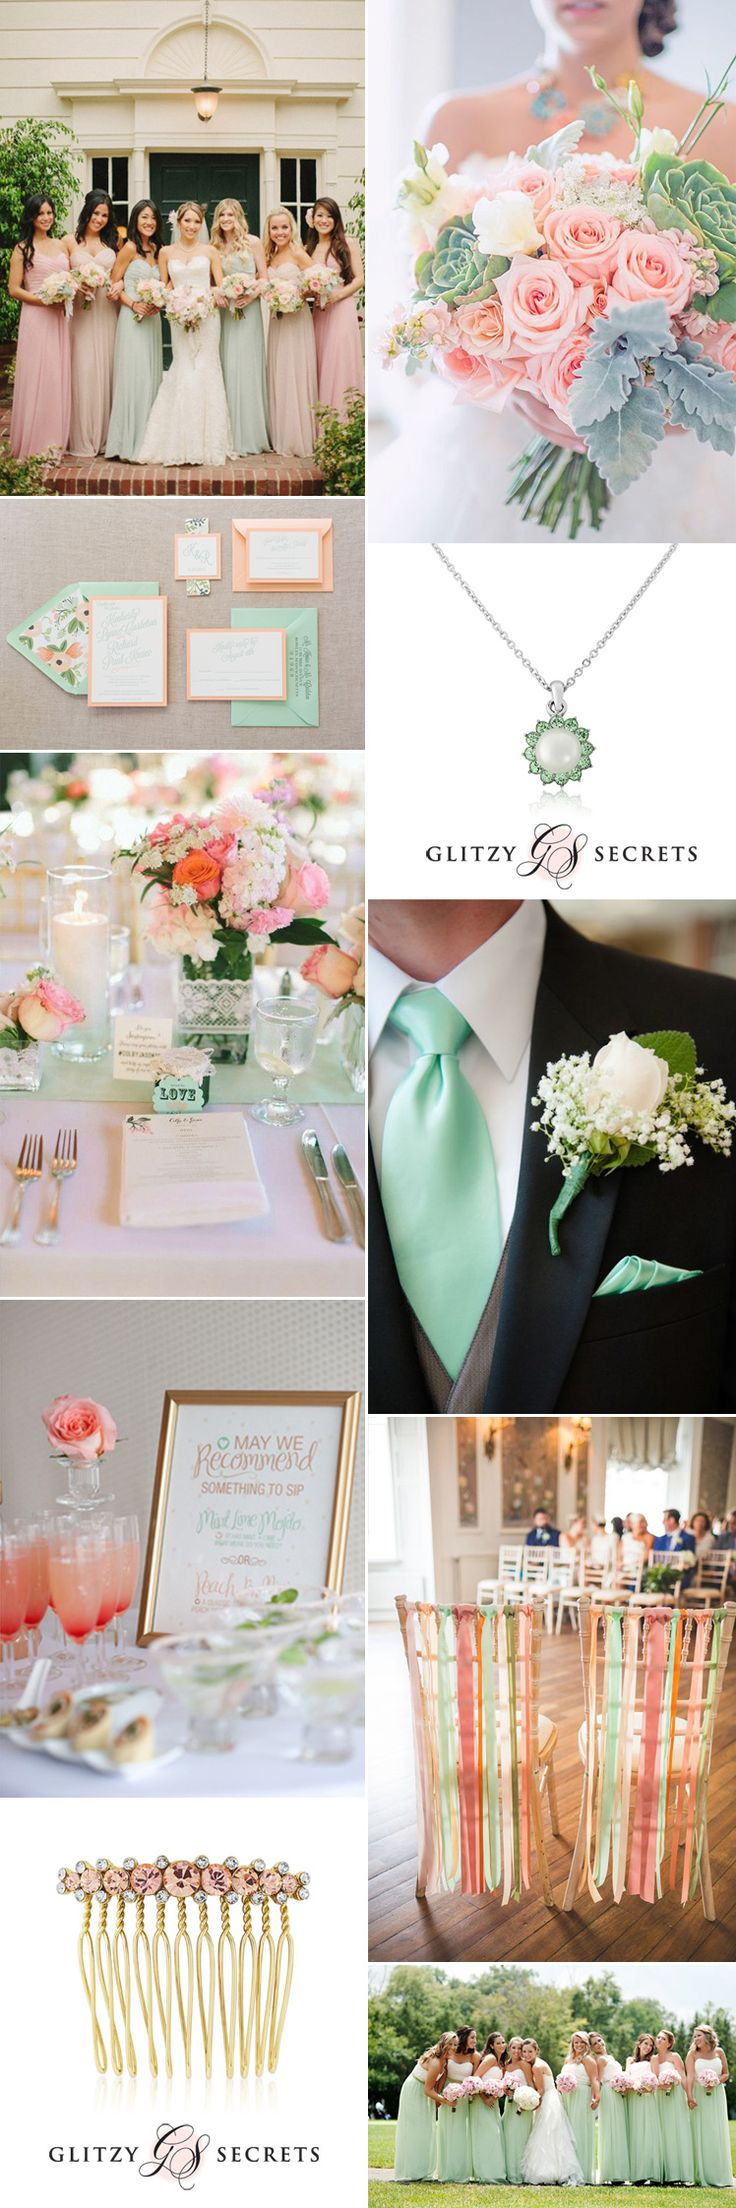 An Oh So Pretty Wedding Theme Of Mint And Peach On GS Inspiration